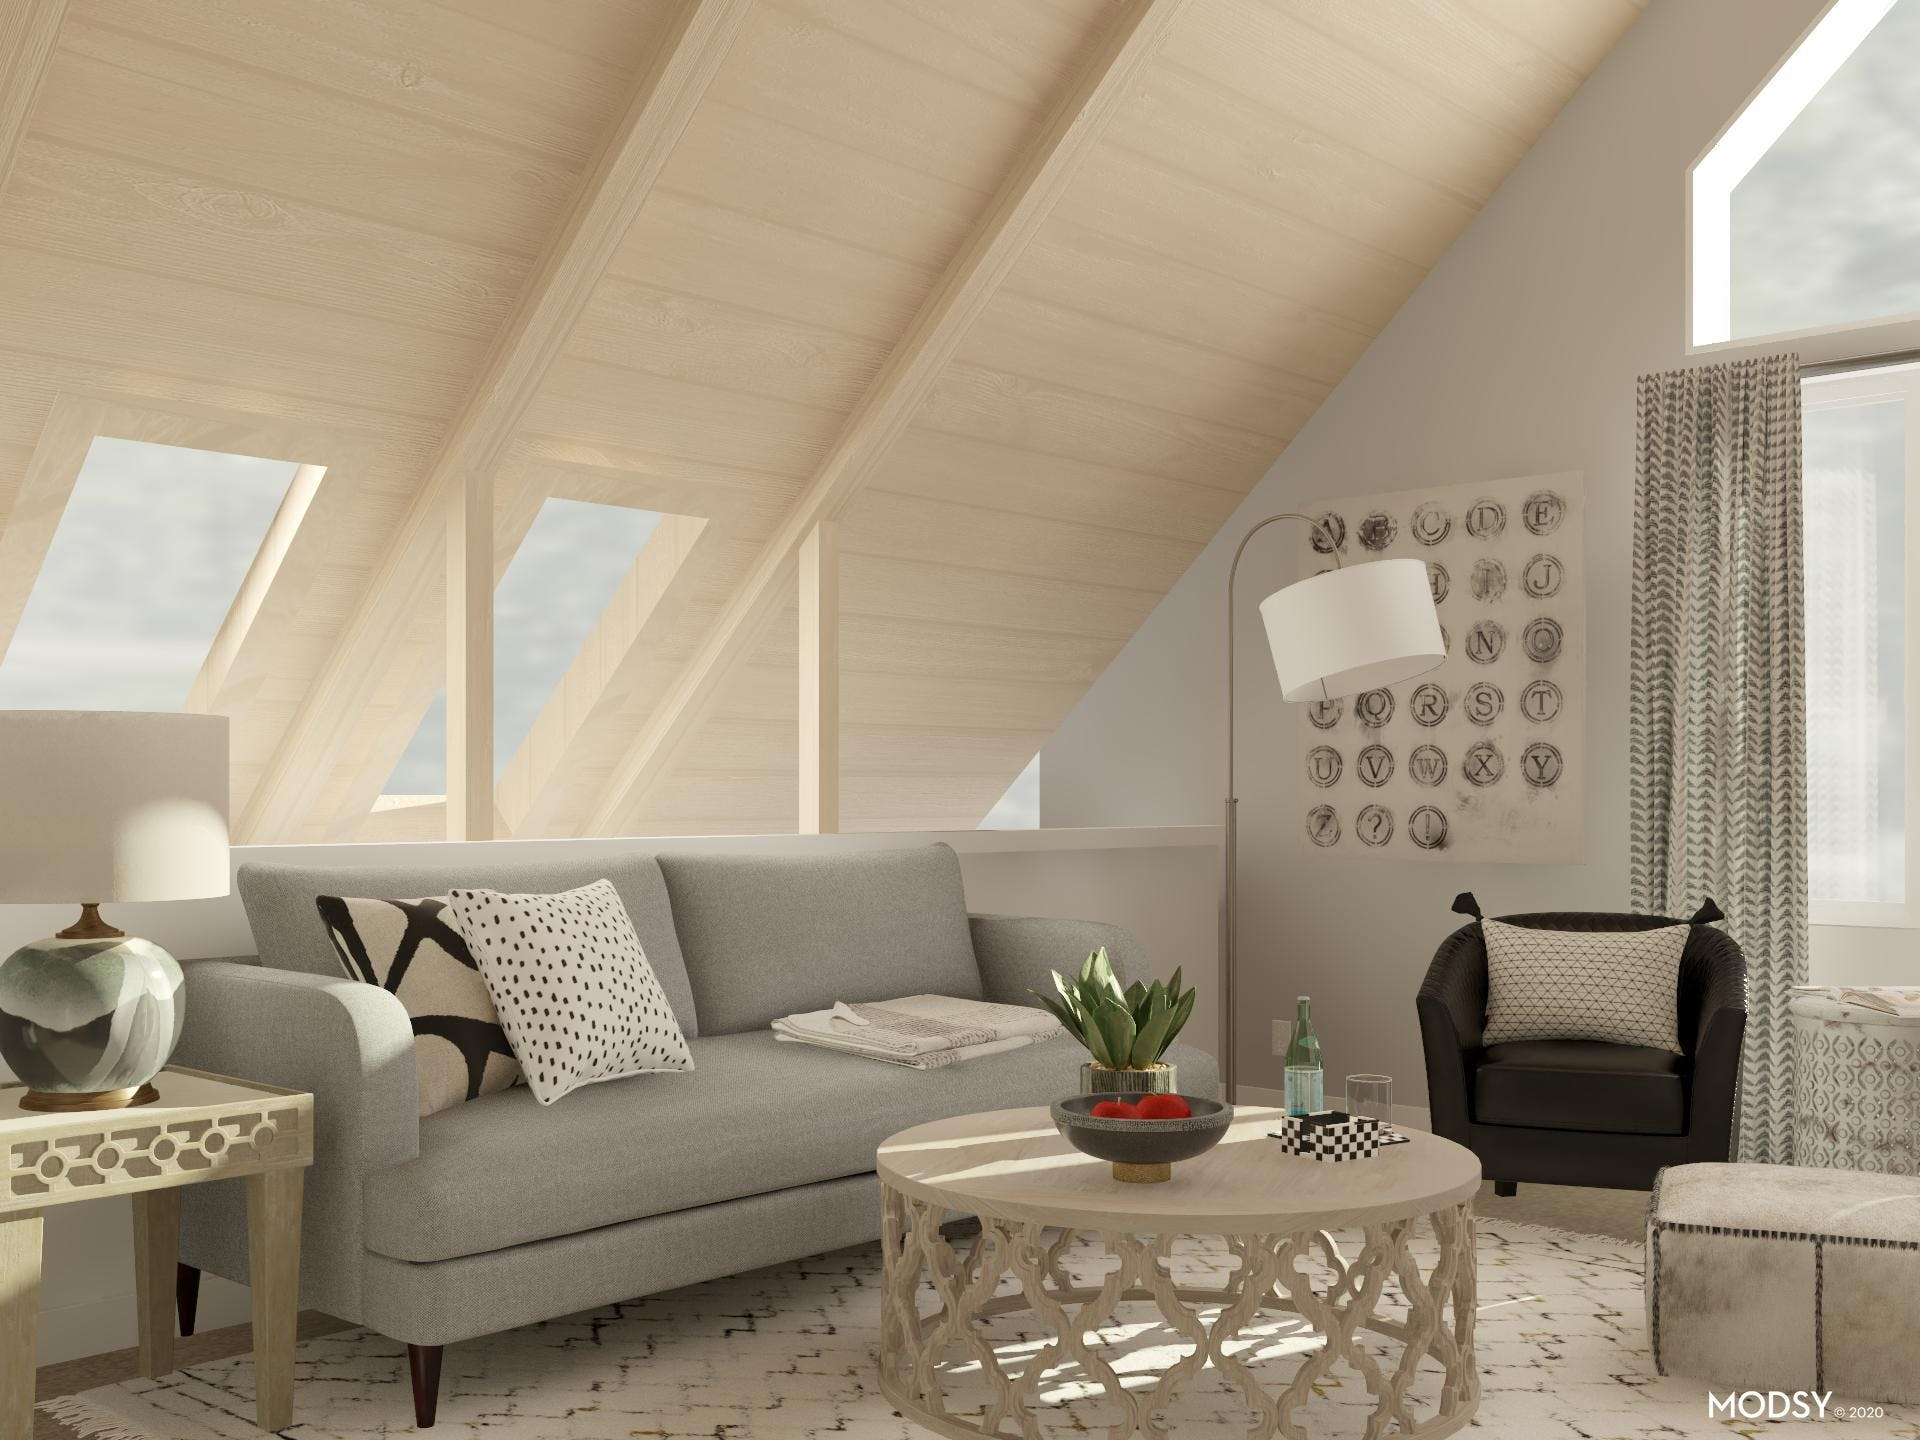 Living Space with a Soothing Palette